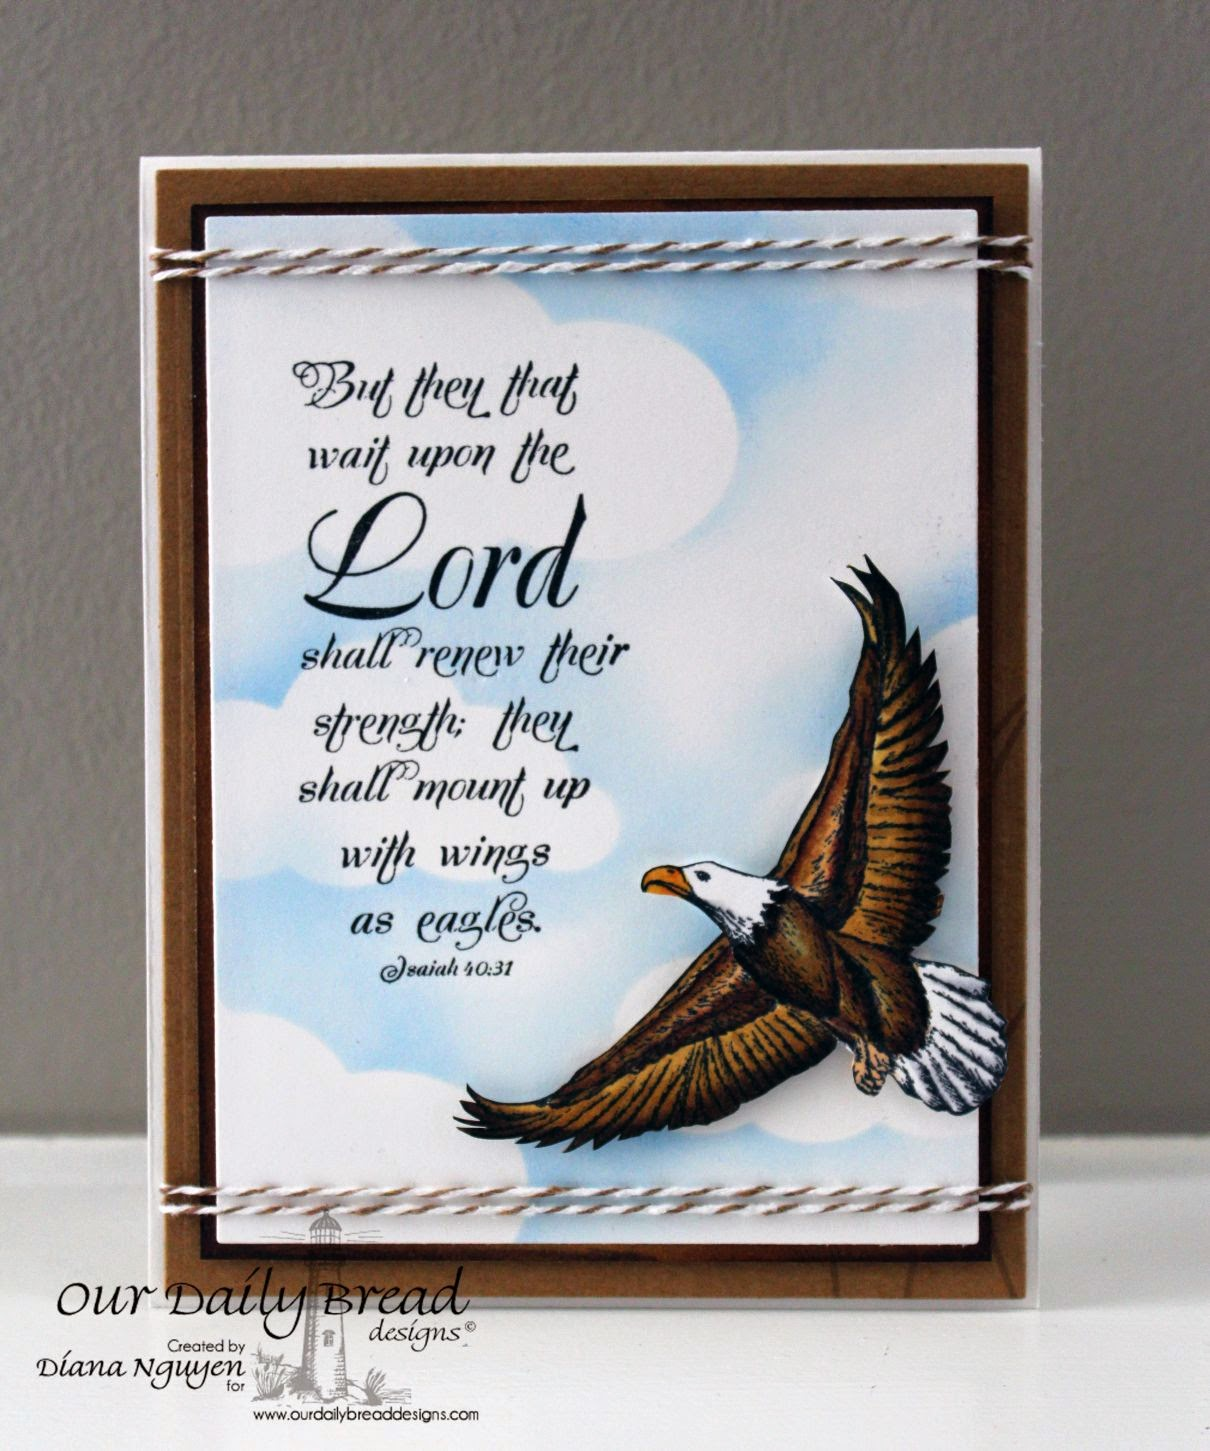 Diana Nguyen, ODBD, Our Daily Bread Designs, On Eagles' Wings